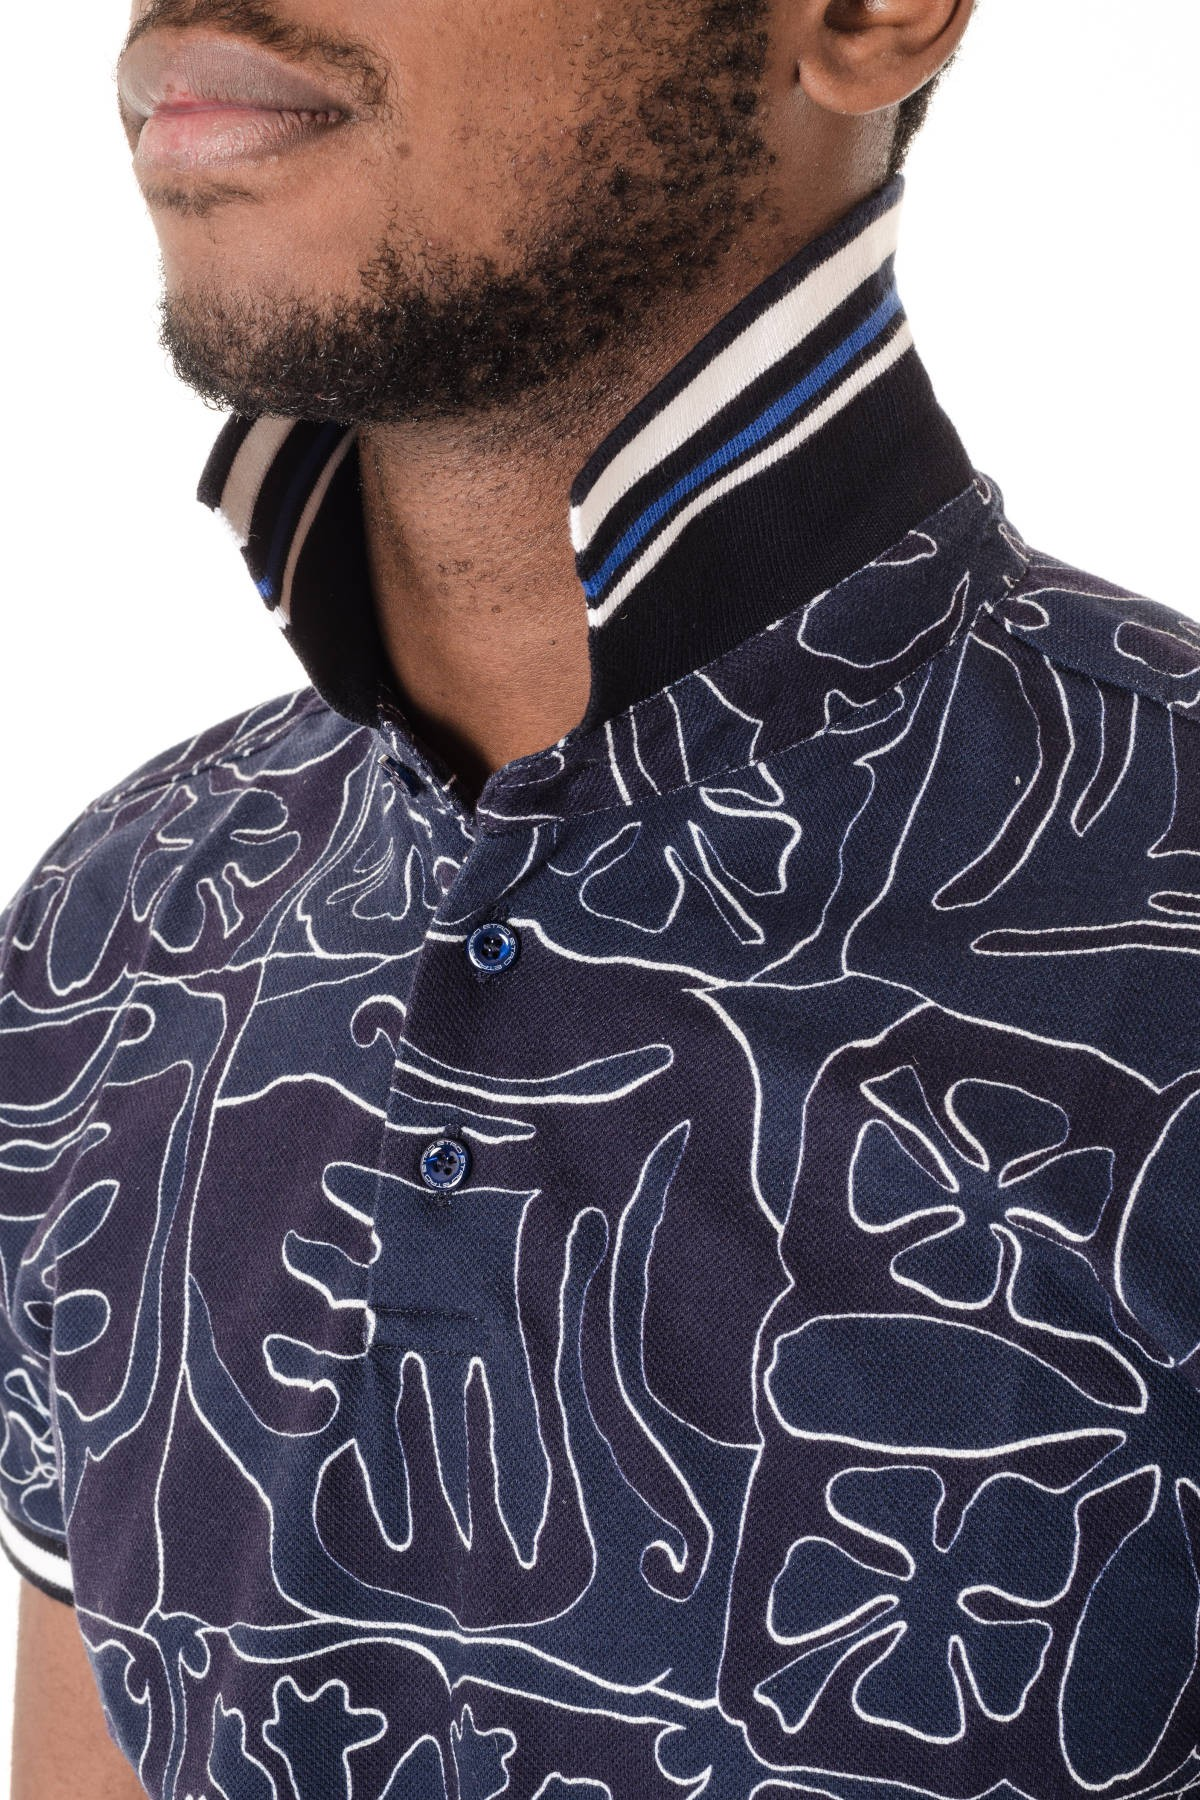 fa3055991 ... Dark blue polo shirt for men with pattern ETRO S/S 16